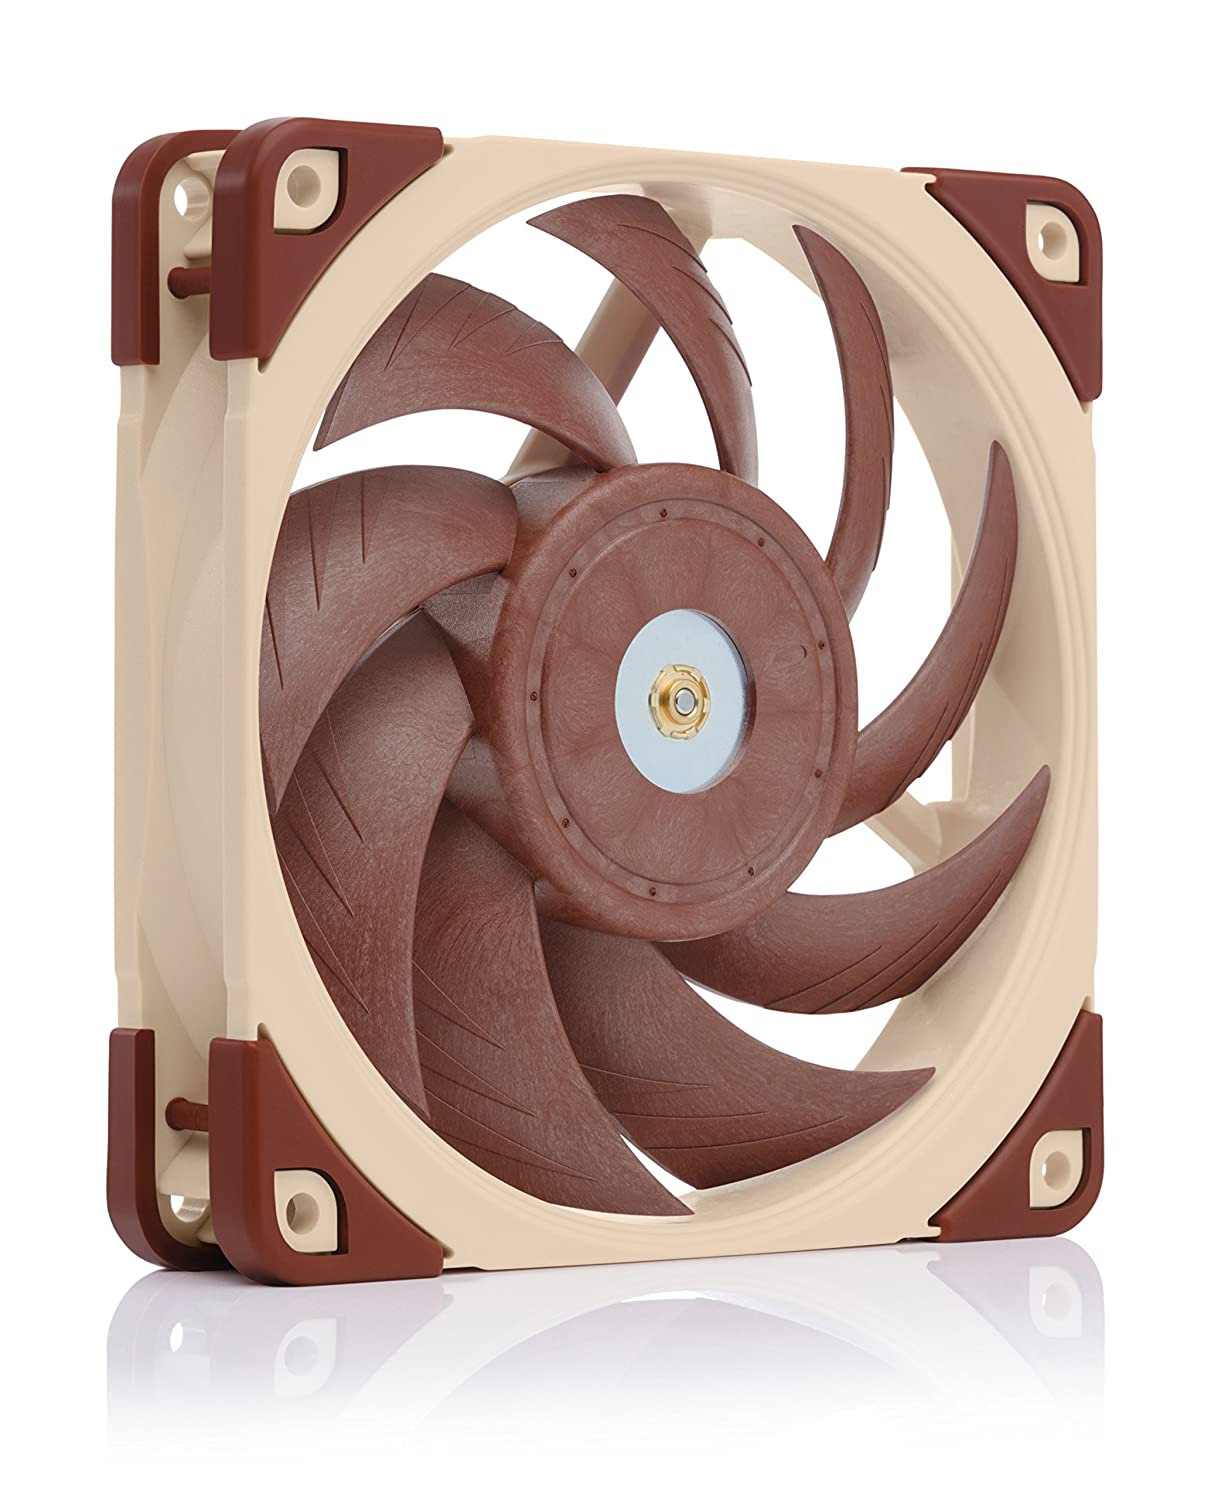 Noctua NF-A12x25 ULN PREMIUM QUALITY QUIET 120MM FAN, BROWN